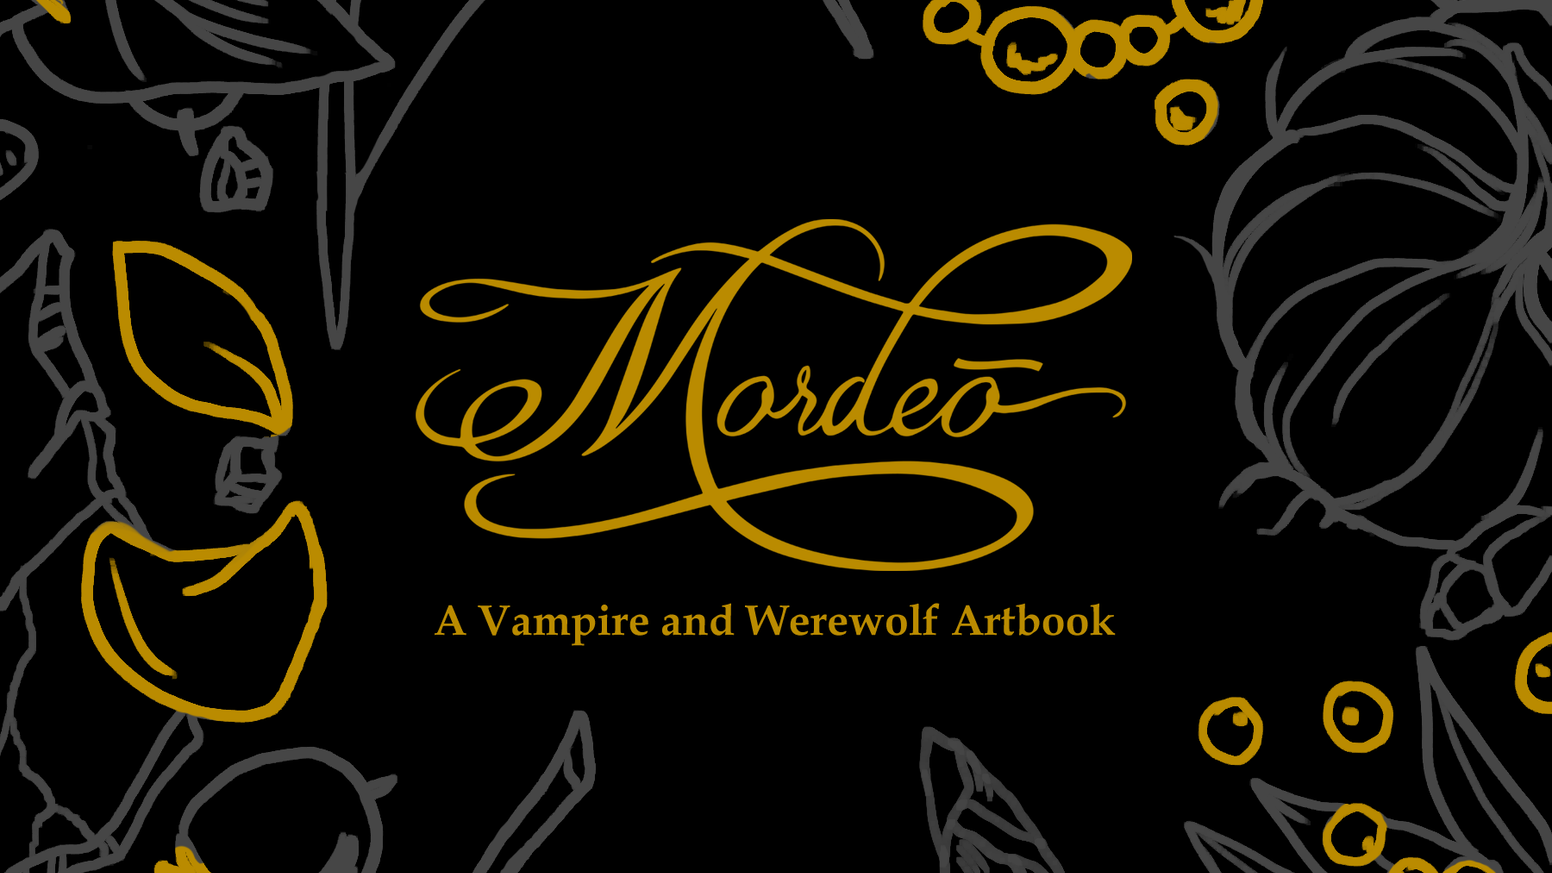 An original illustration artbook dedicated to vampires and werewolves.